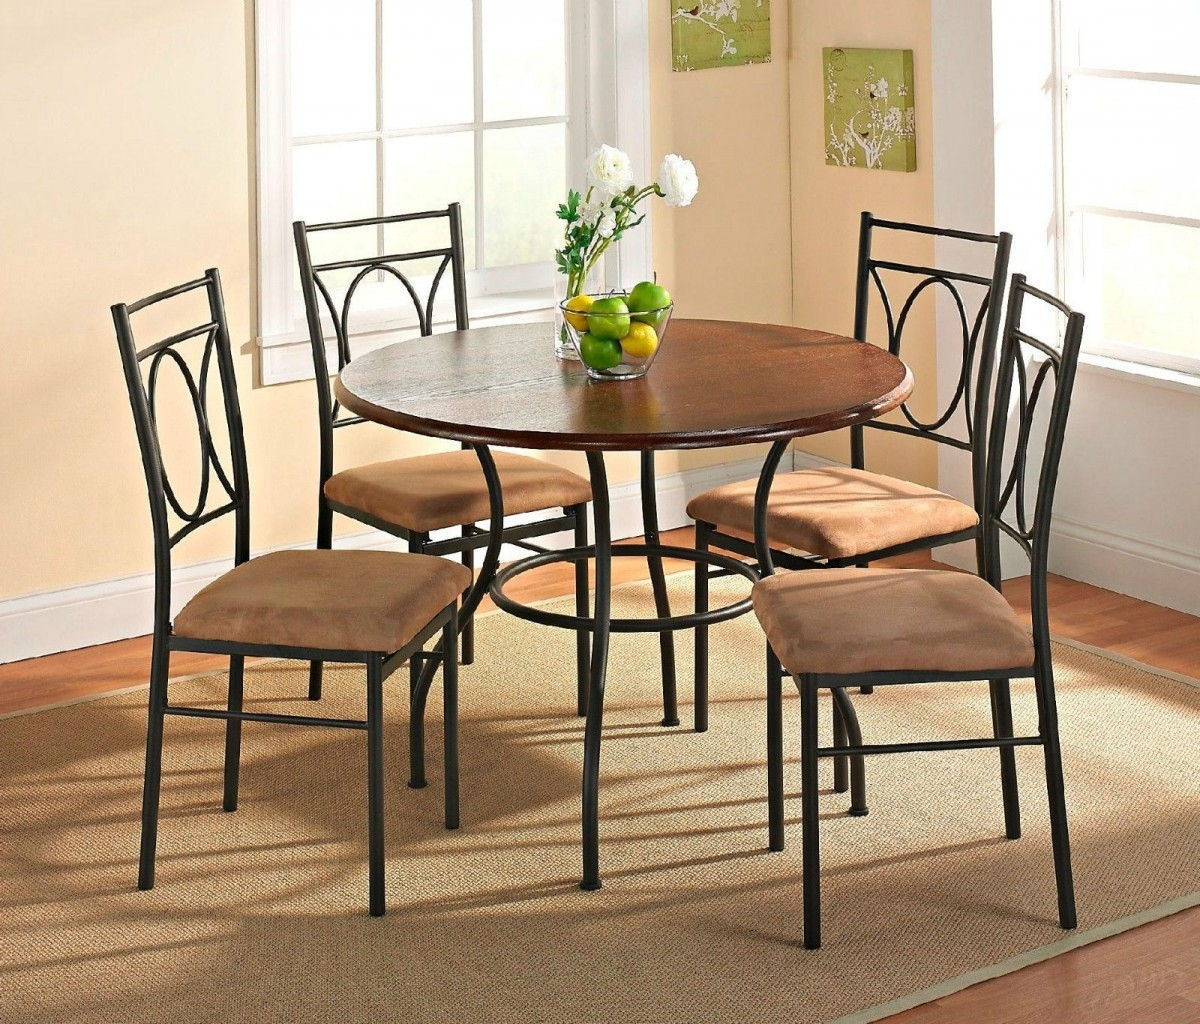 Compact Dining Room Sets With Regard To 2018 Dining Room Very Small Dining Table And Chairs Small Kitchen Dining (Gallery 9 of 25)